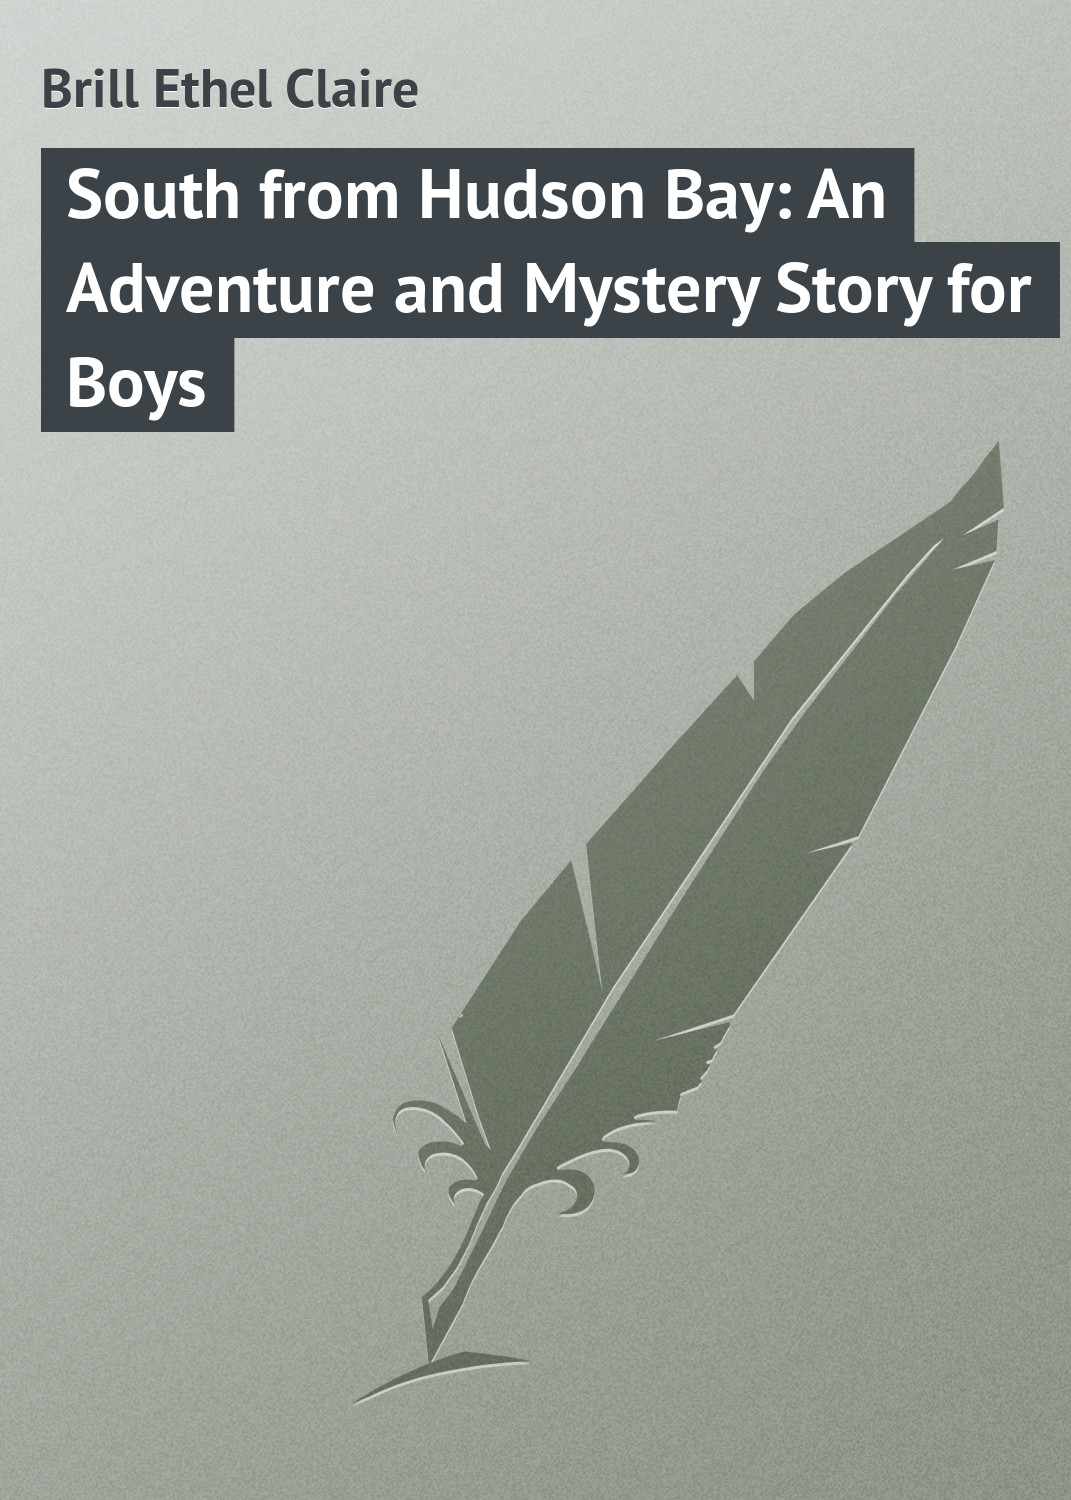 Brill Ethel Claire South from Hudson Bay: An Adventure and Mystery Story for Boys goodwin harold leland the wailing octopus a rick brant science adventure story